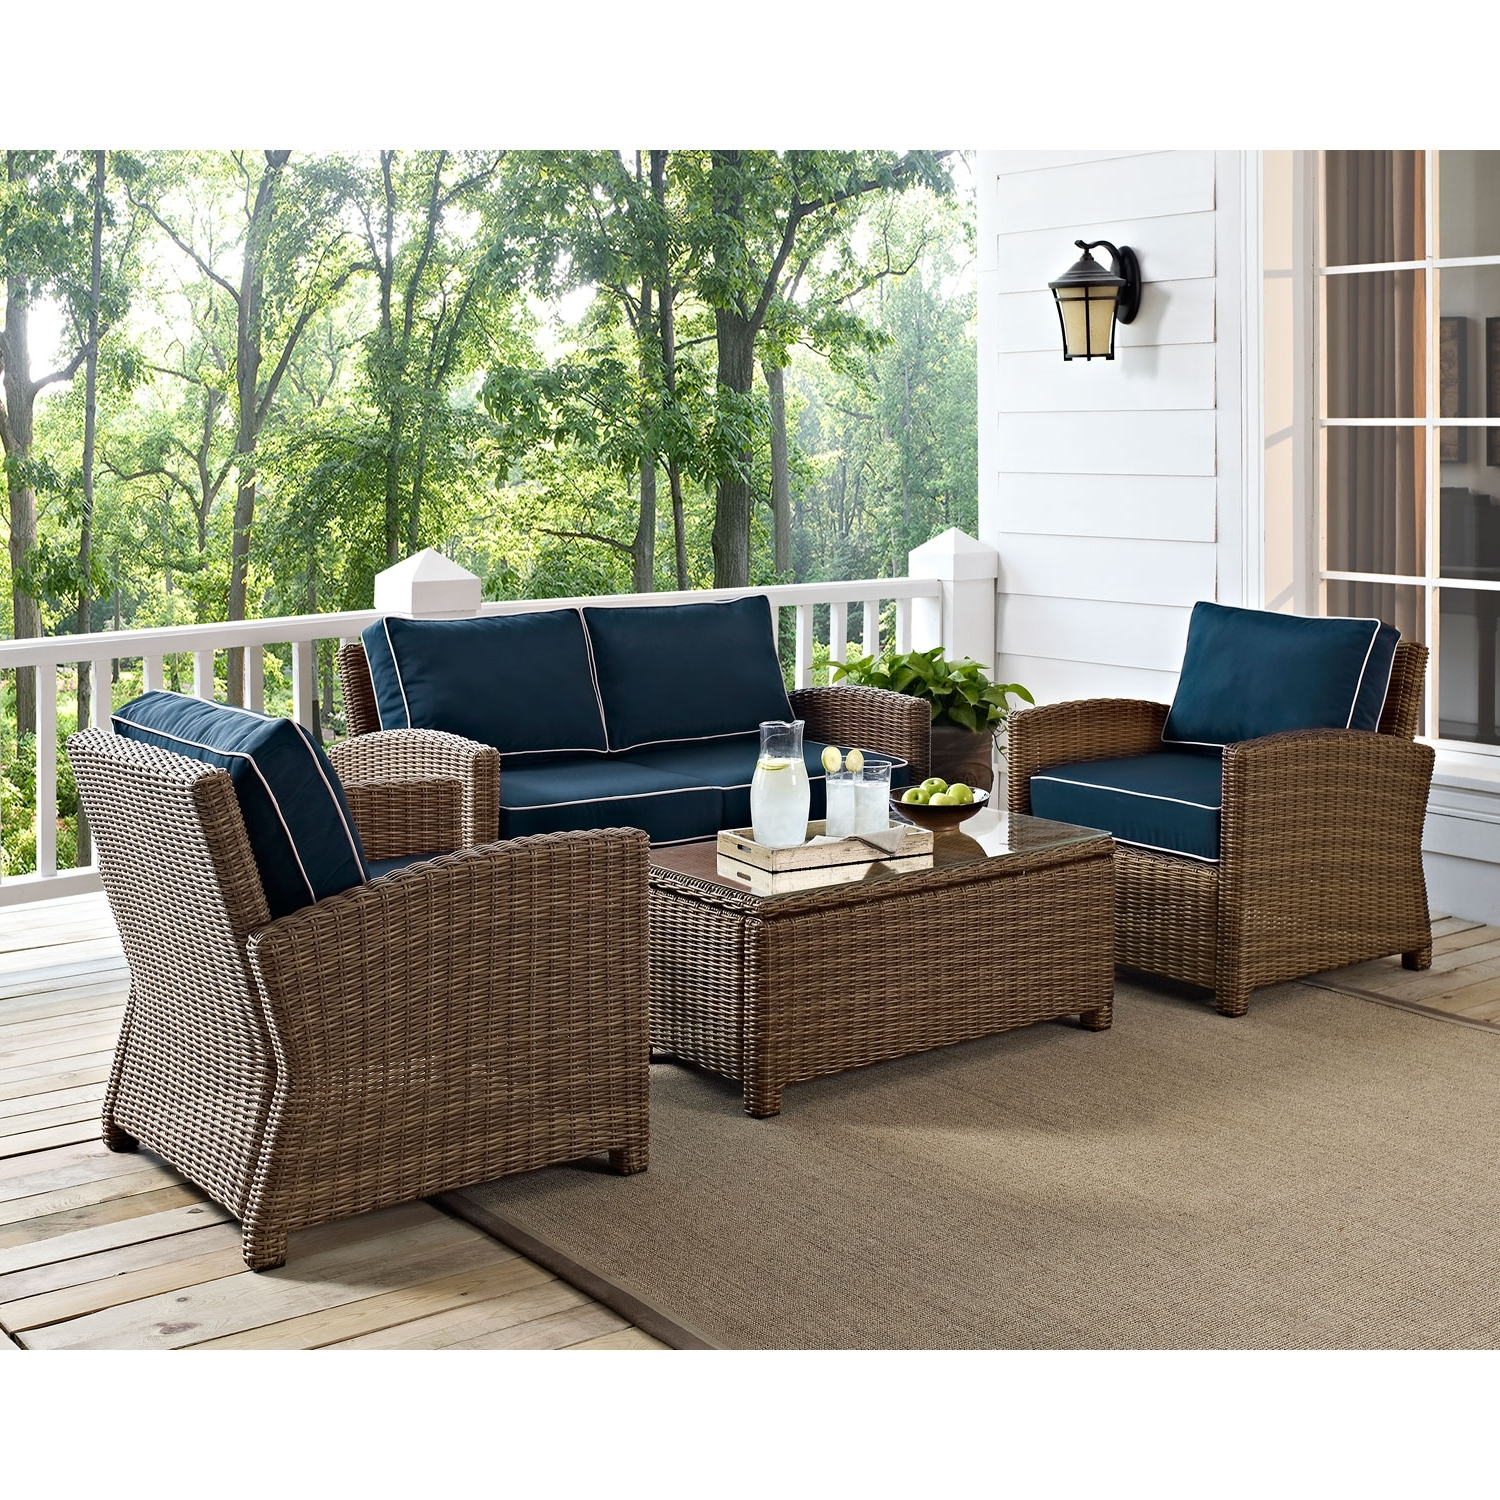 Well Known Wicker 4Pc Patio Conversation Sets With Navy Cushions In Crosley Furniture Bradenton 4 Piece Outdoor Wicker Seating Set With (View 14 of 20)